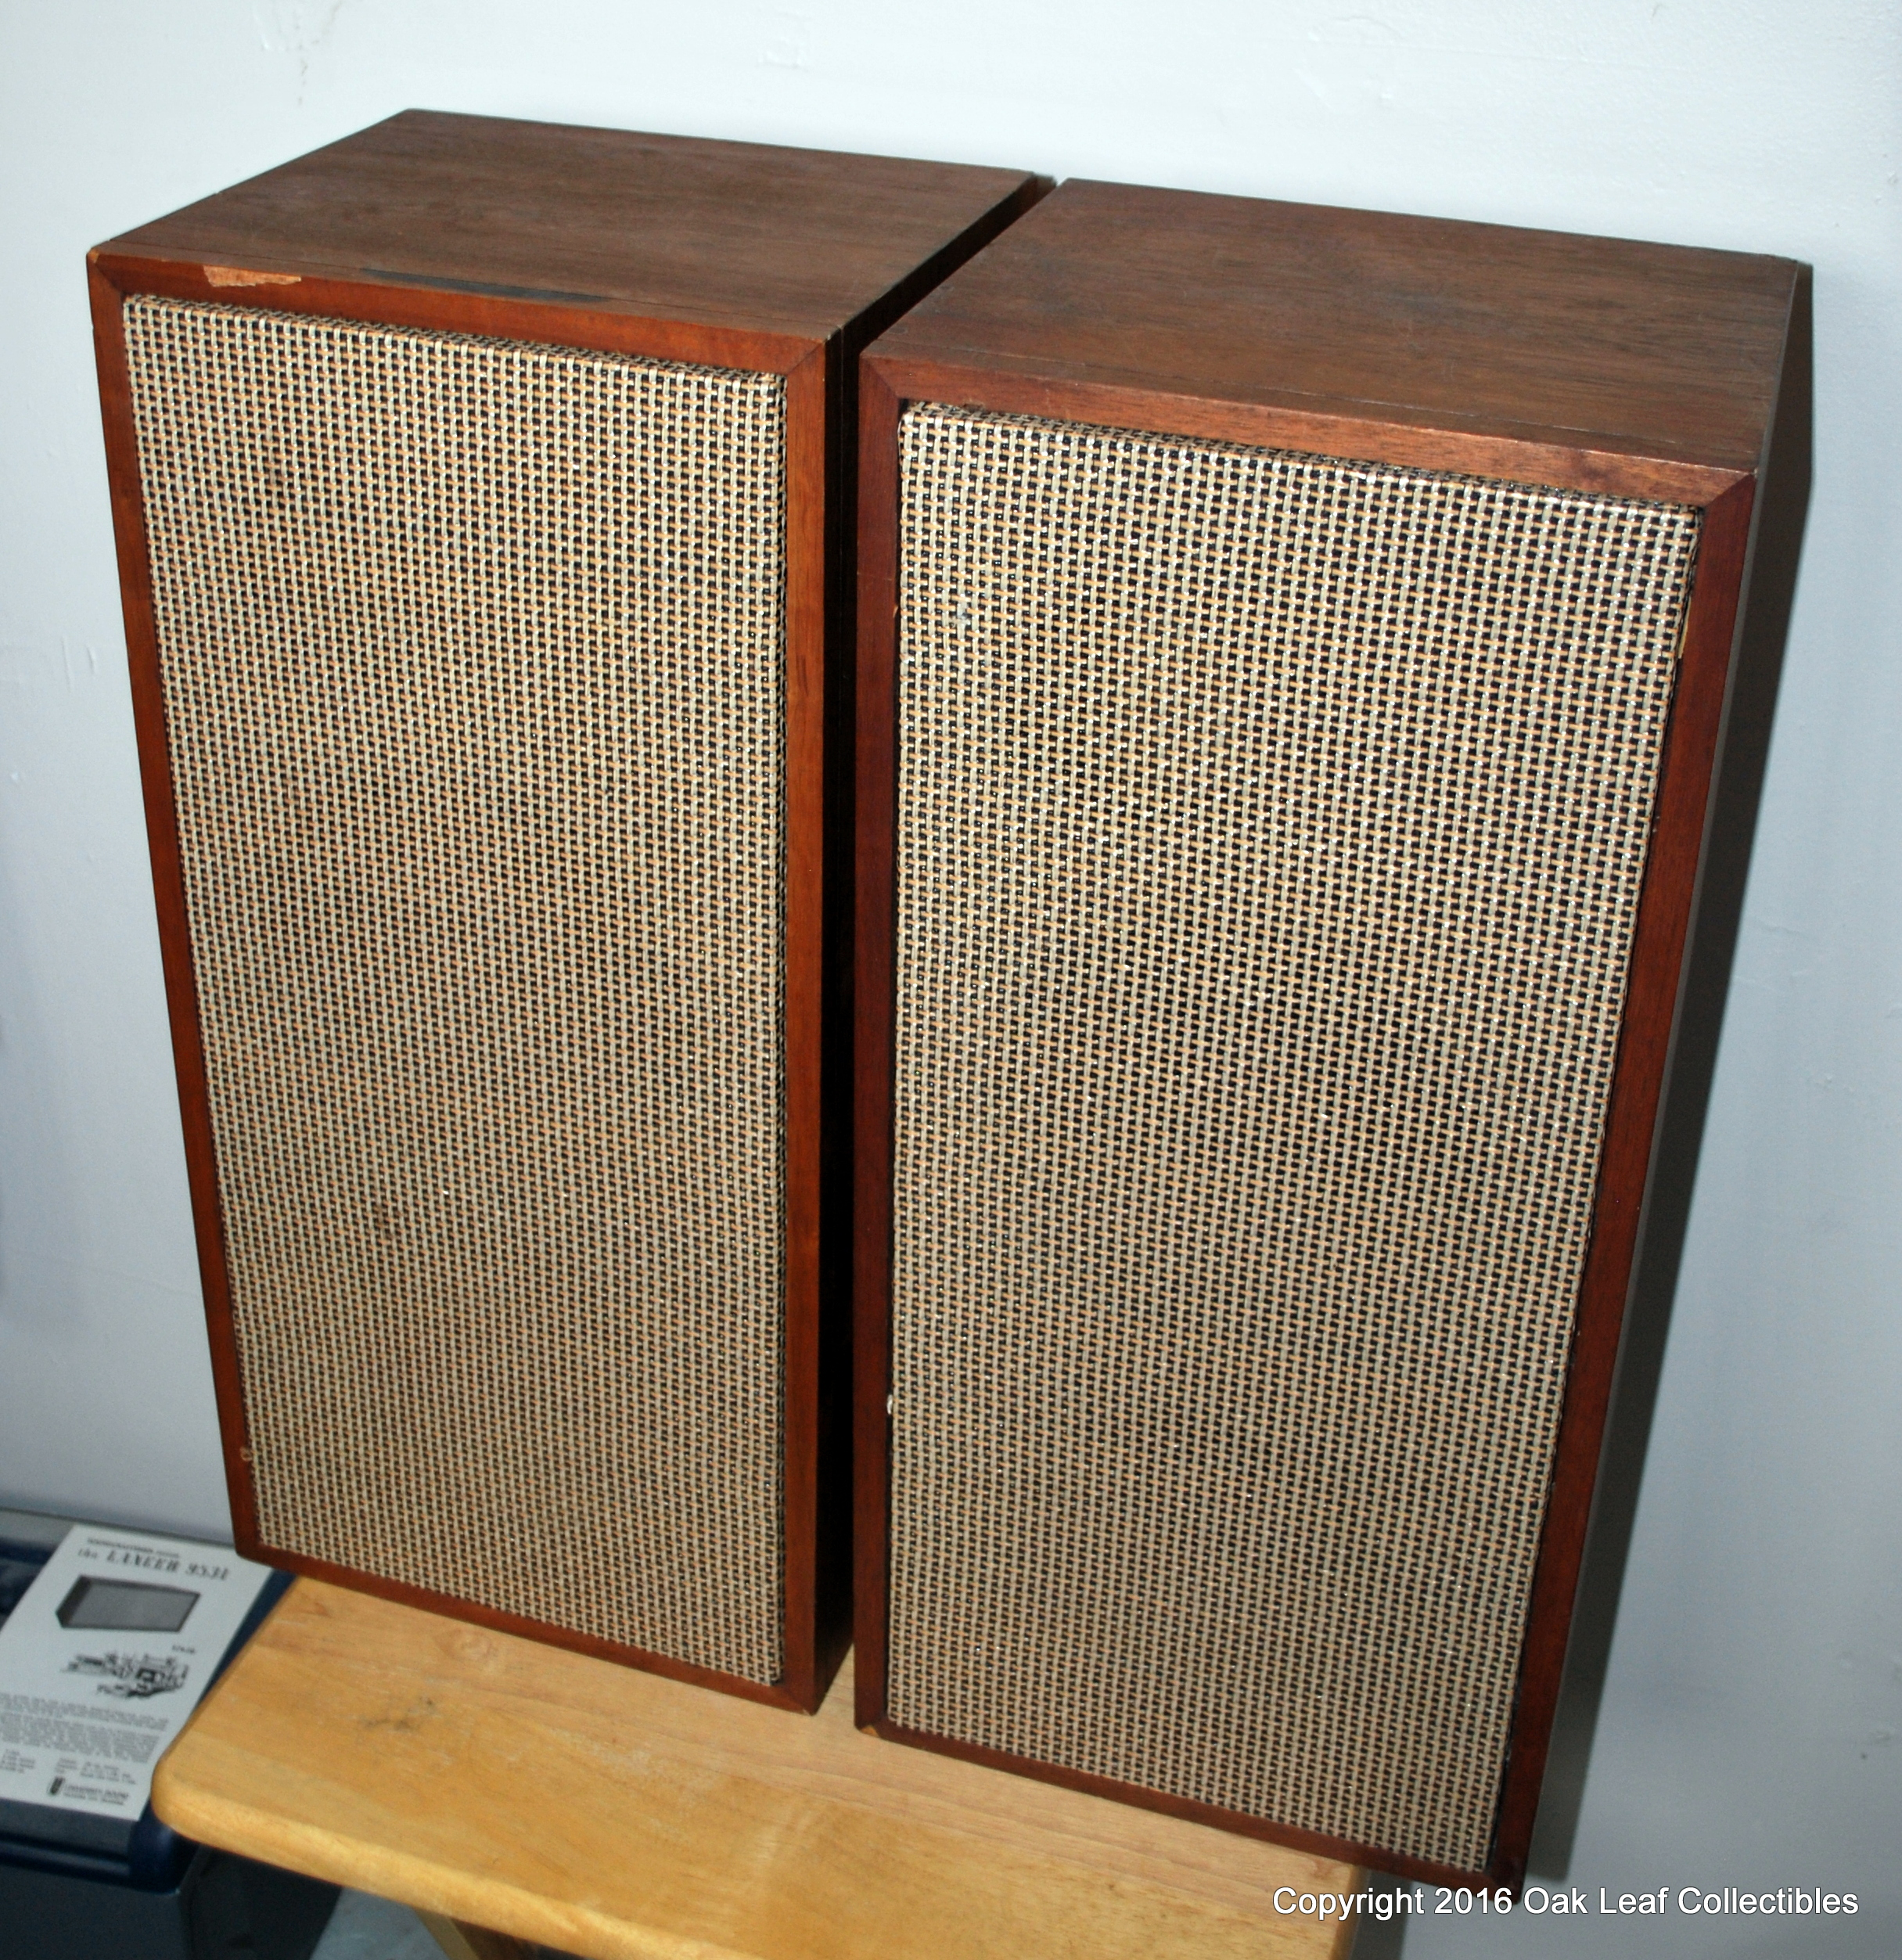 Vintage Stereo Equipment For Sale!